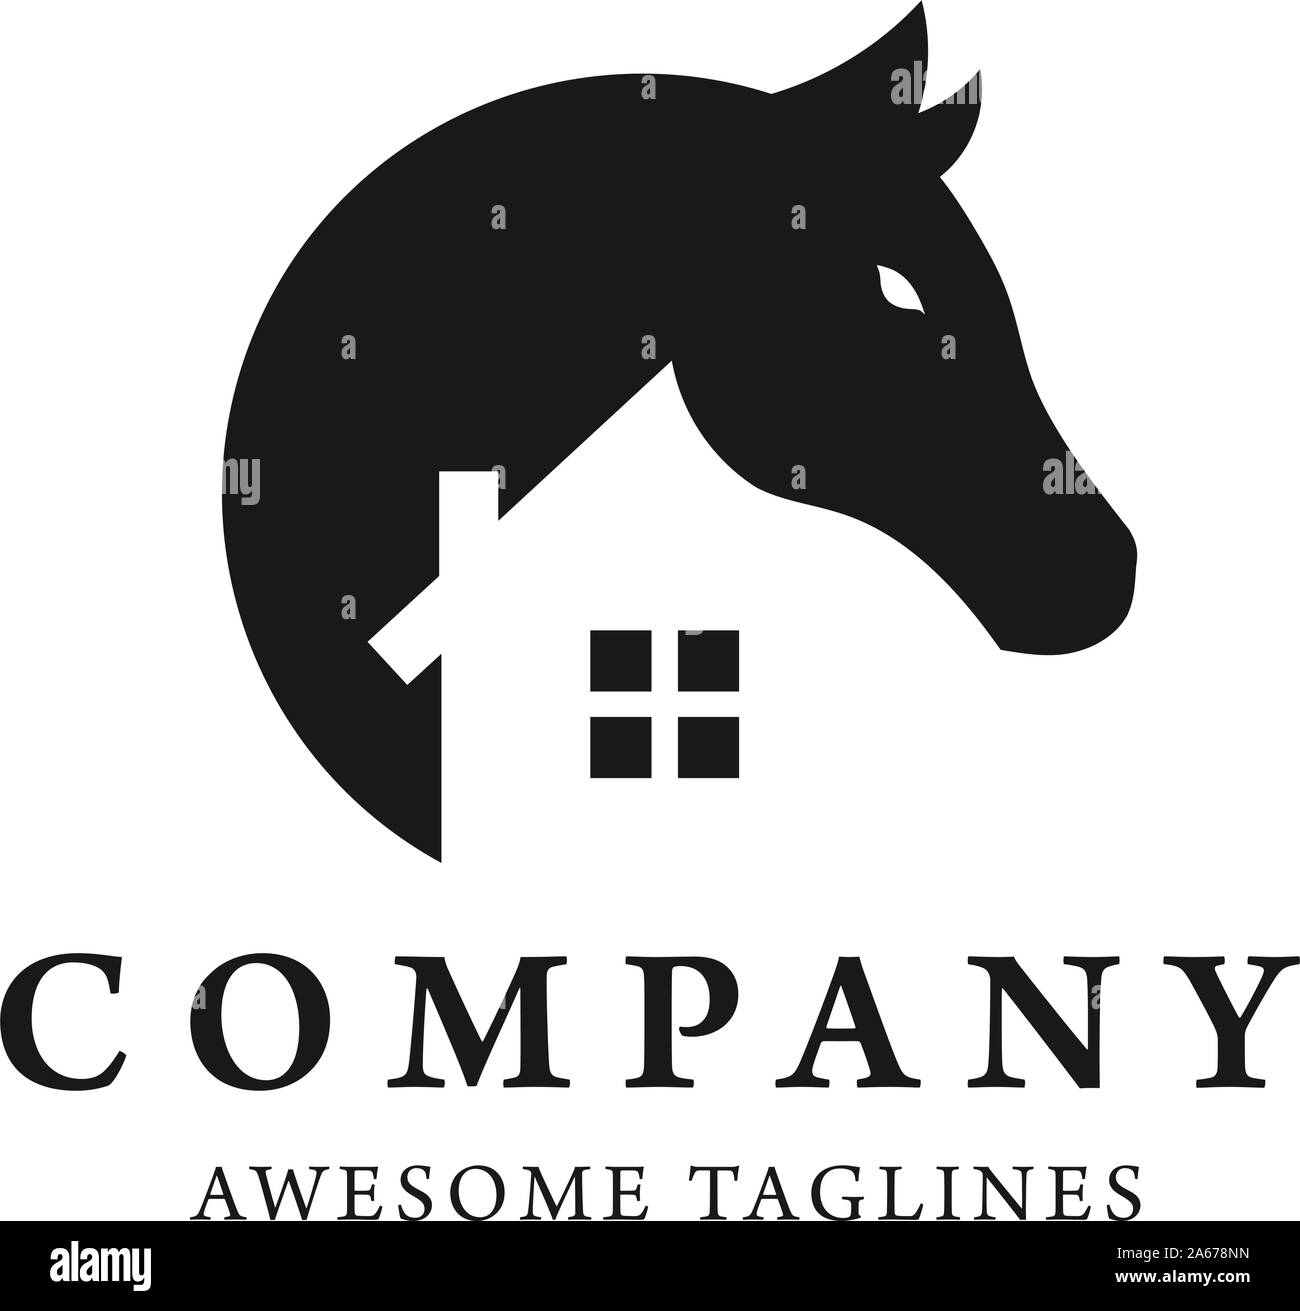 Simple Horse And House Logo Design Template This Logo Is Very Suitable For Real Estate Interior Art Studio Etc Stock Vector Image Art Alamy